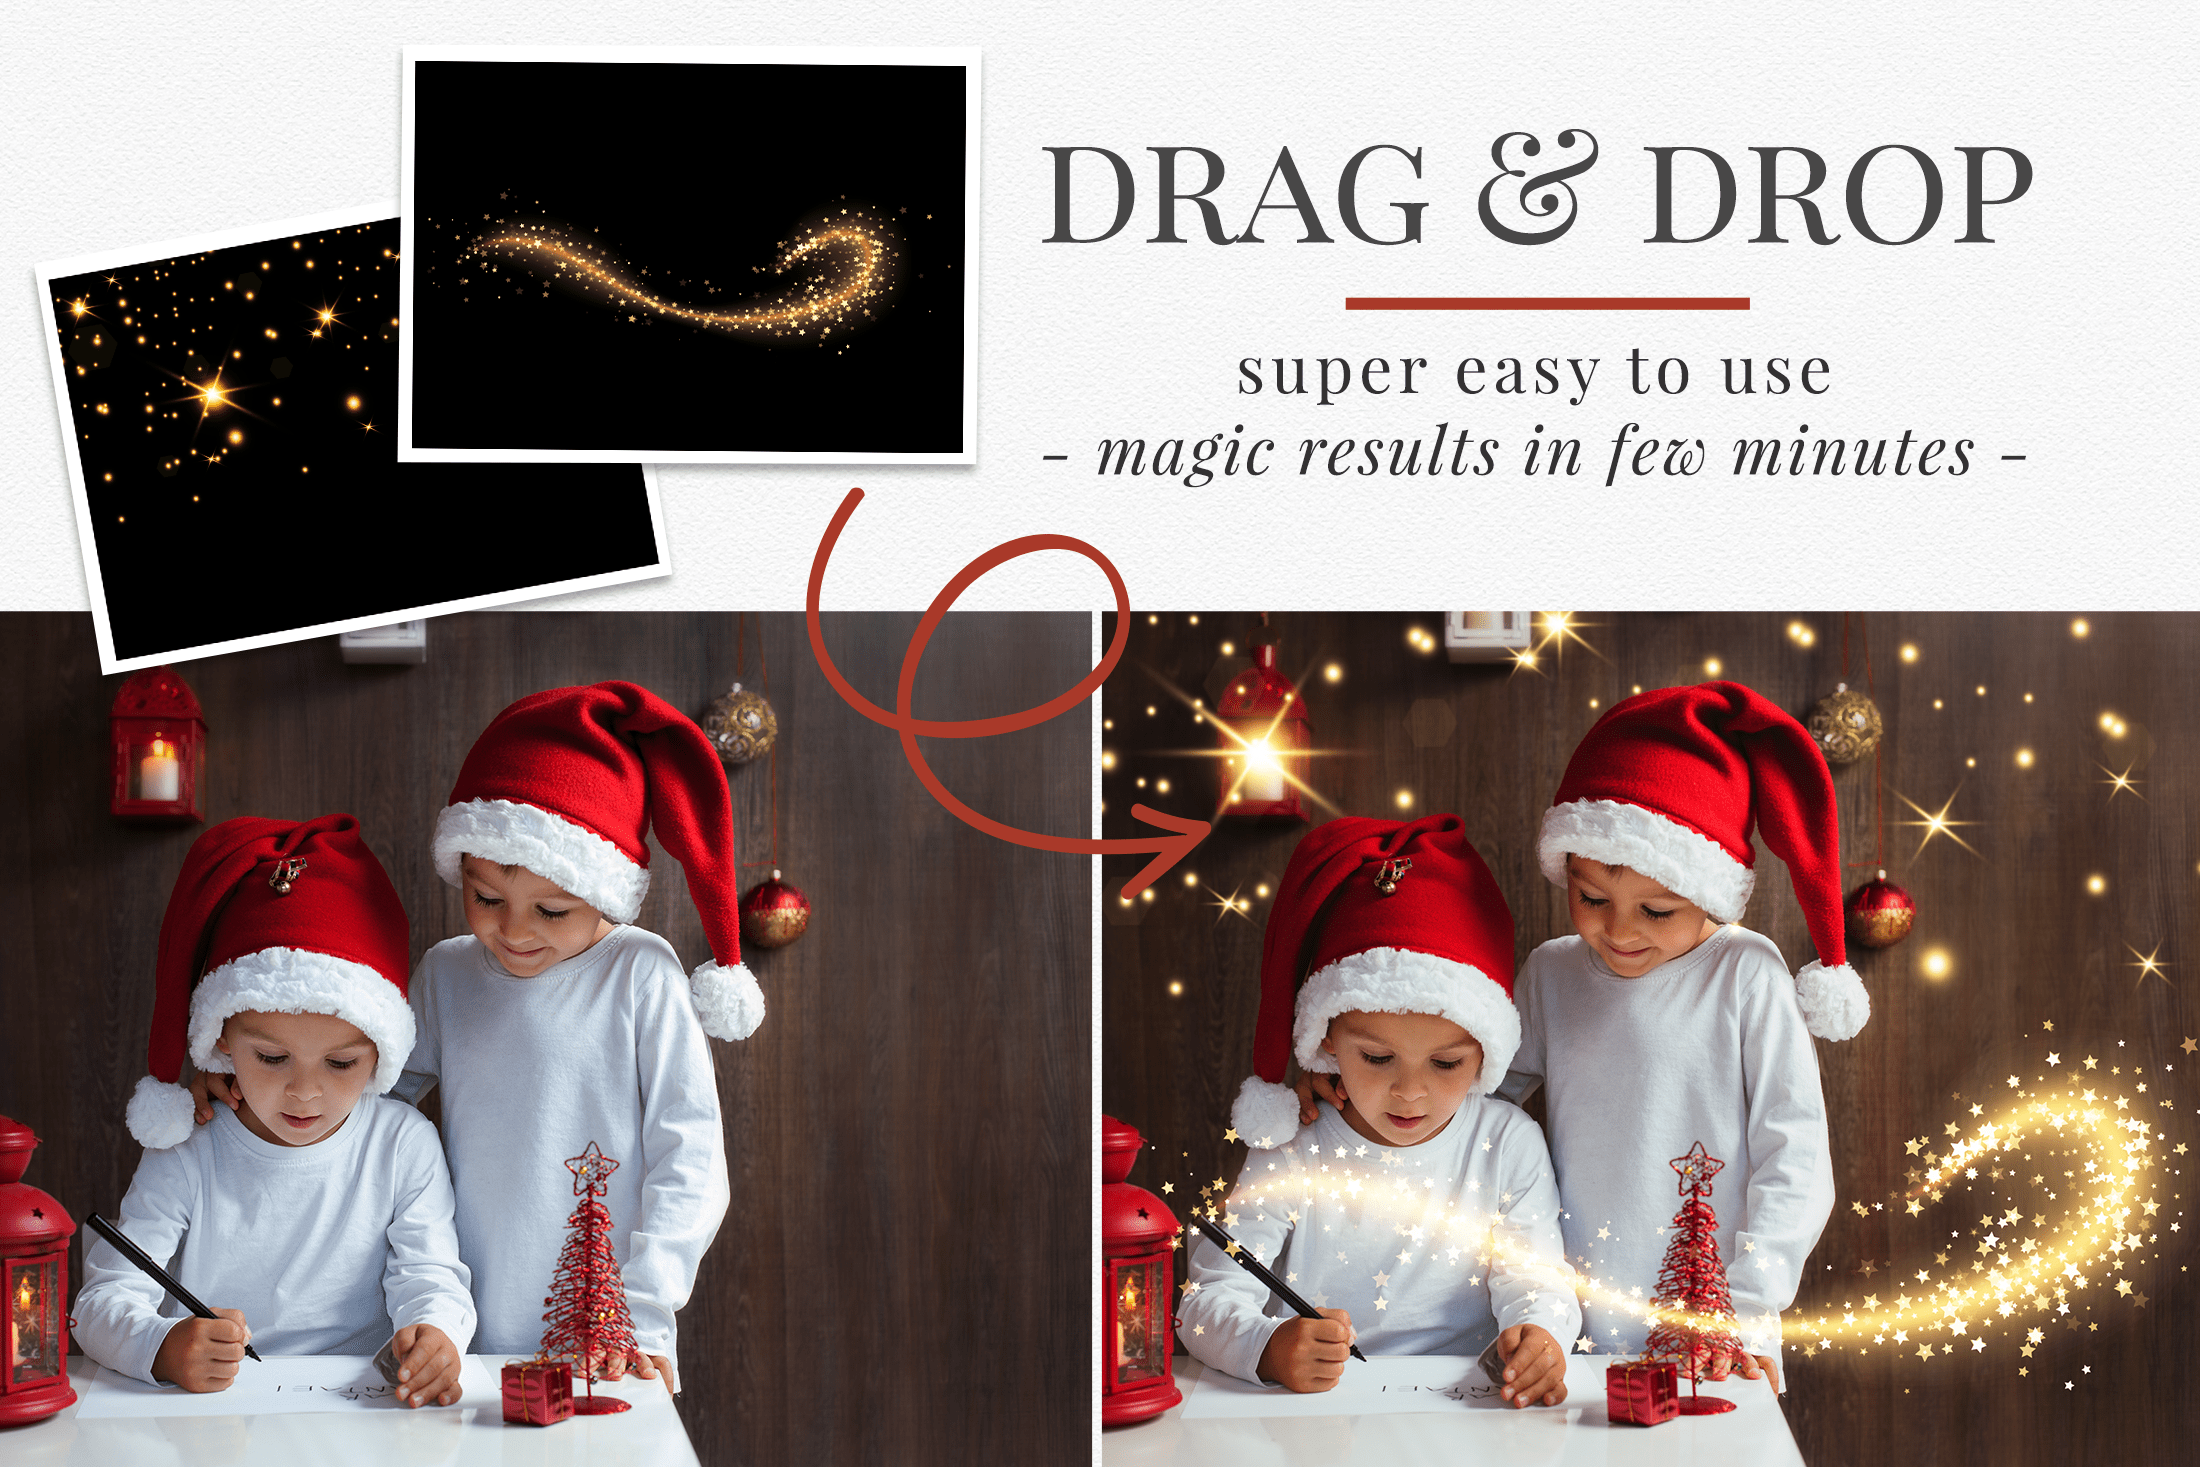 Enhance your Christmas photography with magic effects! 56 different styles of sparkle & bokeh photo overlays. Great for holiday mini sessions with kids, families & portraits. Drag & drop - very easy to use, fast and simple. Fabulous results just in few seconds. Professional holiday photo overlays for Photoshop, Zoner, Gimp, PicMoneky, Canva, etc. Photo overlays for creative photographers from Brown Leopard.